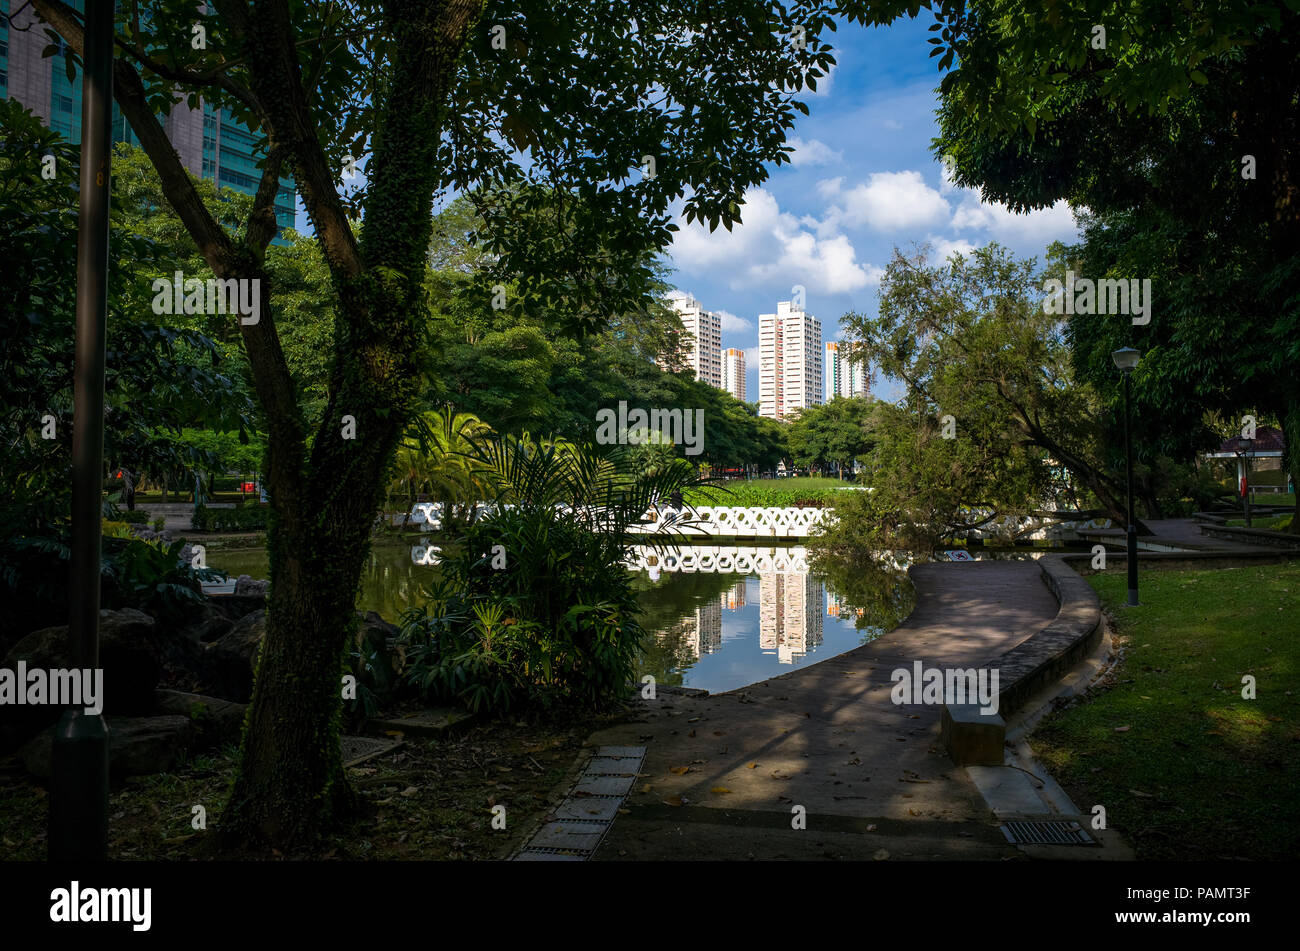 Forest walkway along the water with bridge and cityscape - Toa Payoh Park, Singapore - Stock Image